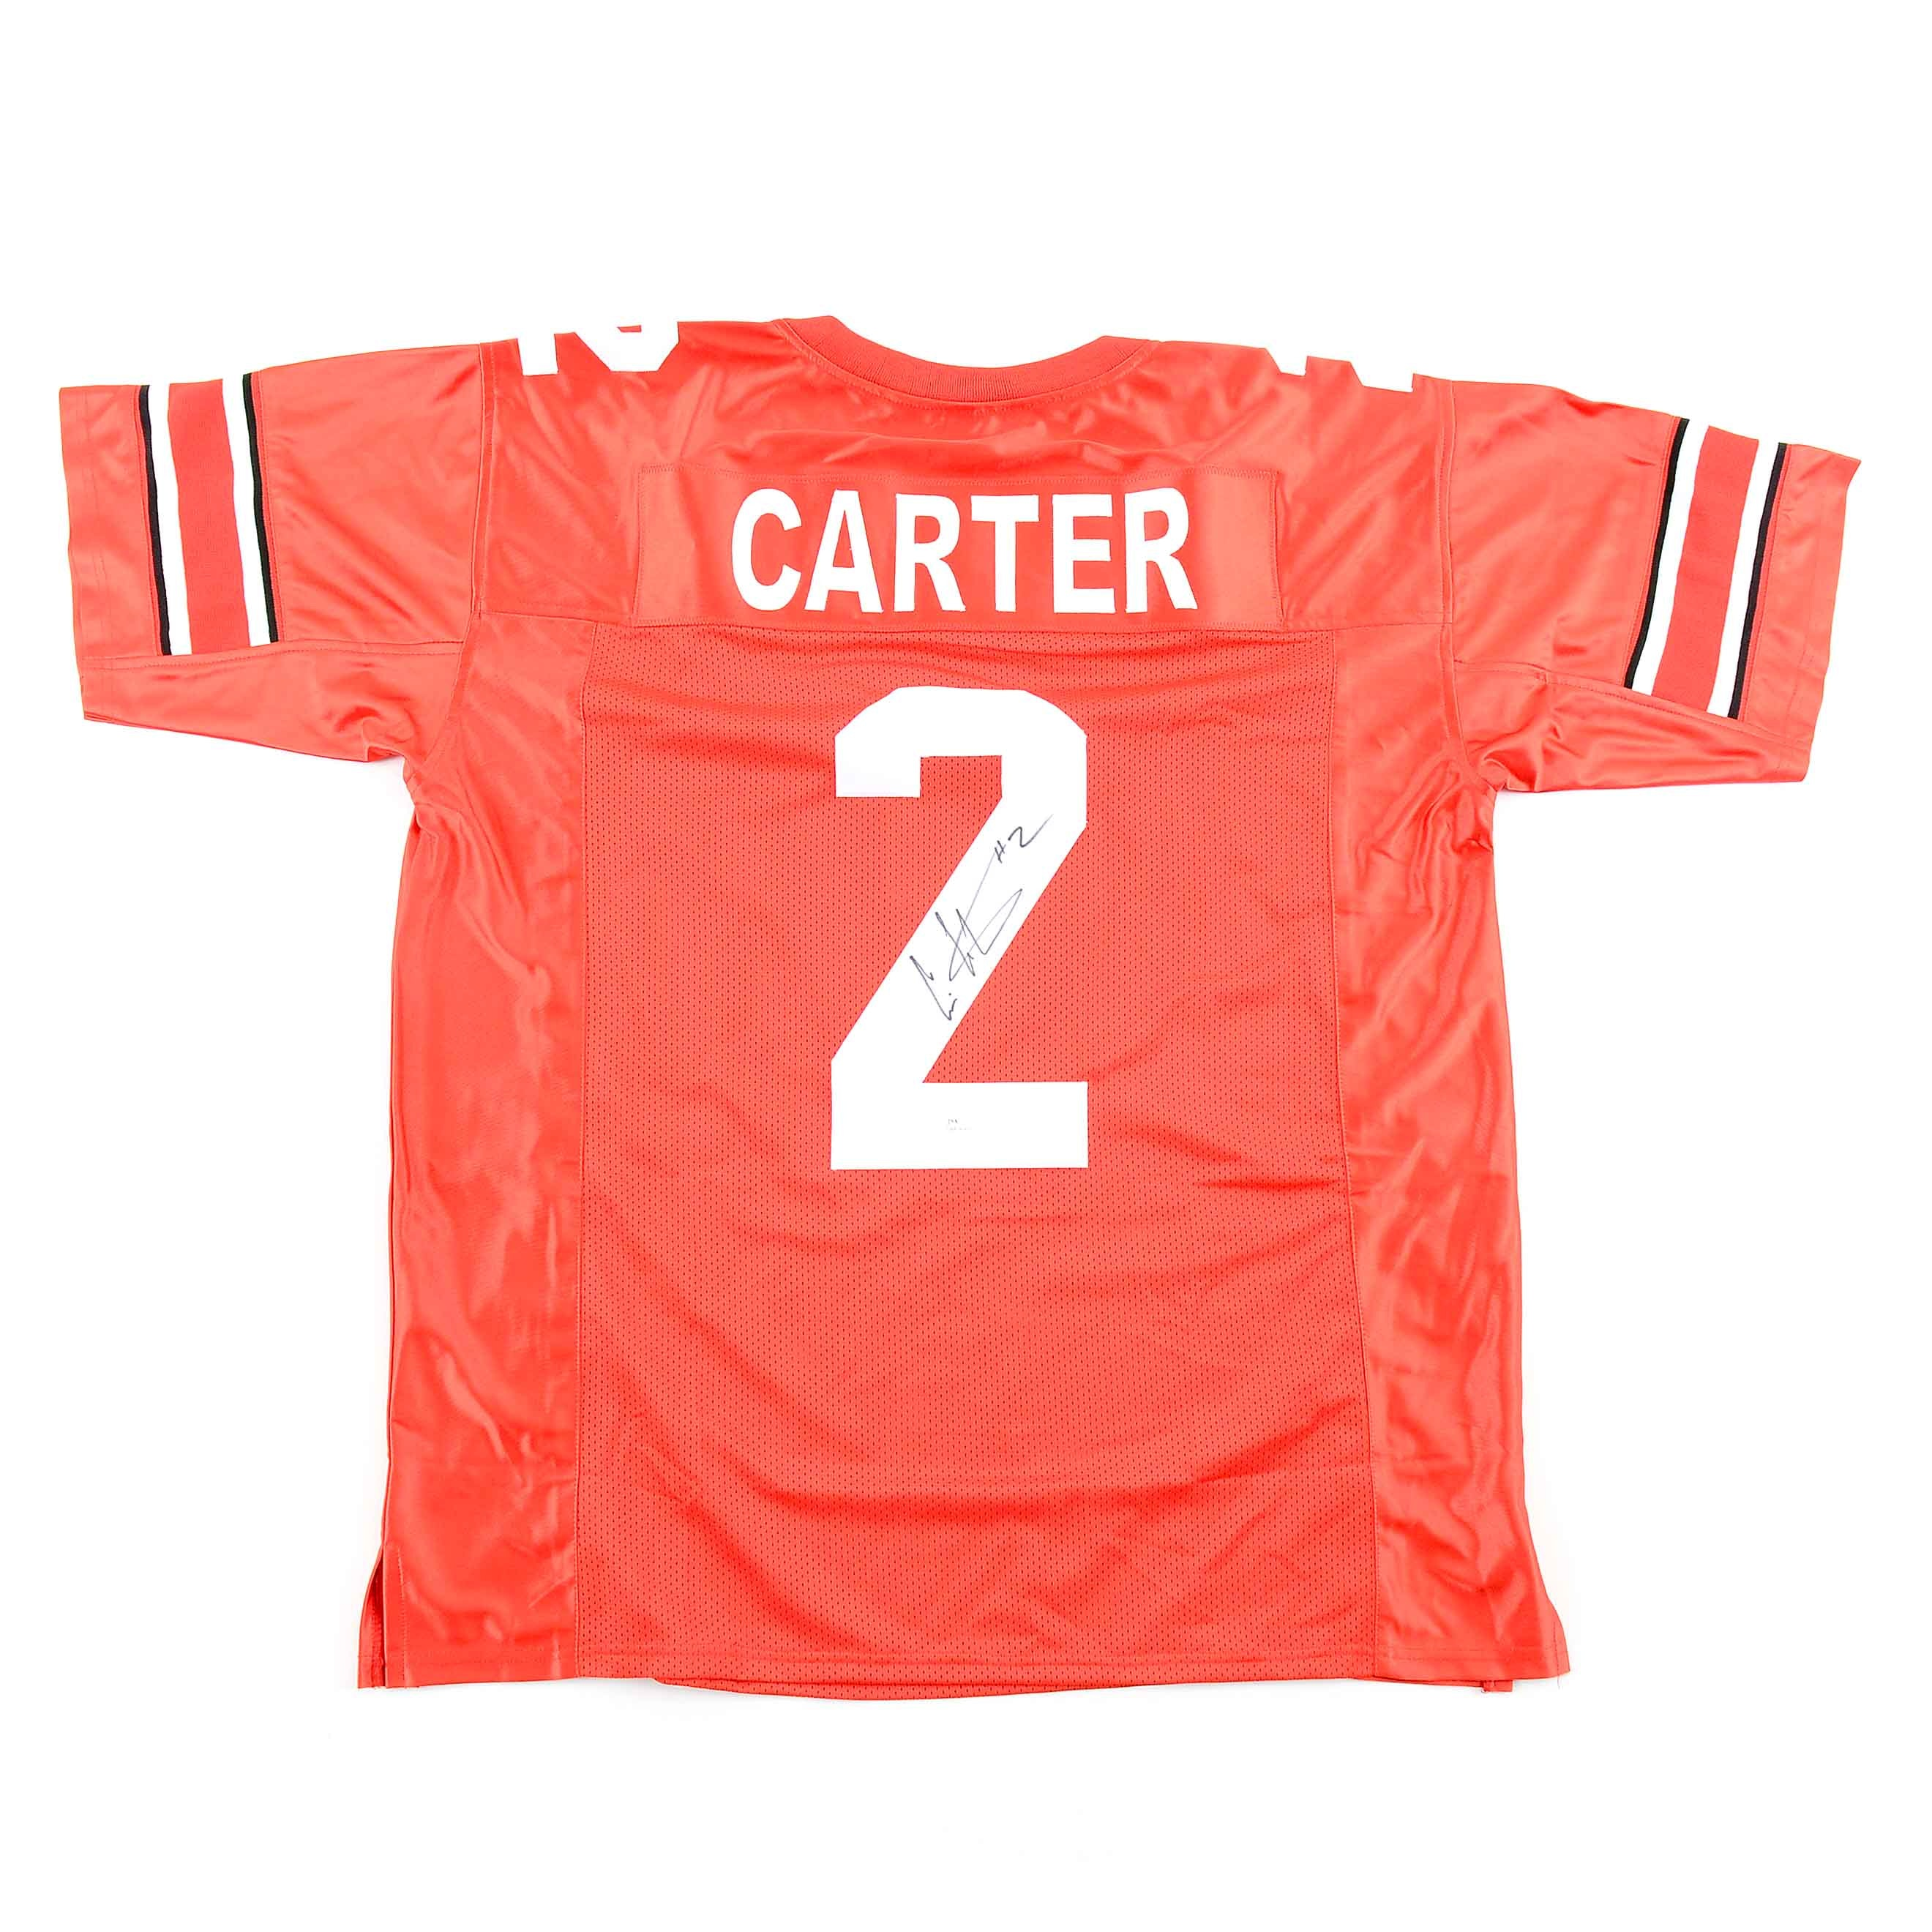 Chris Carter Signed Ohio State Jersey  COA